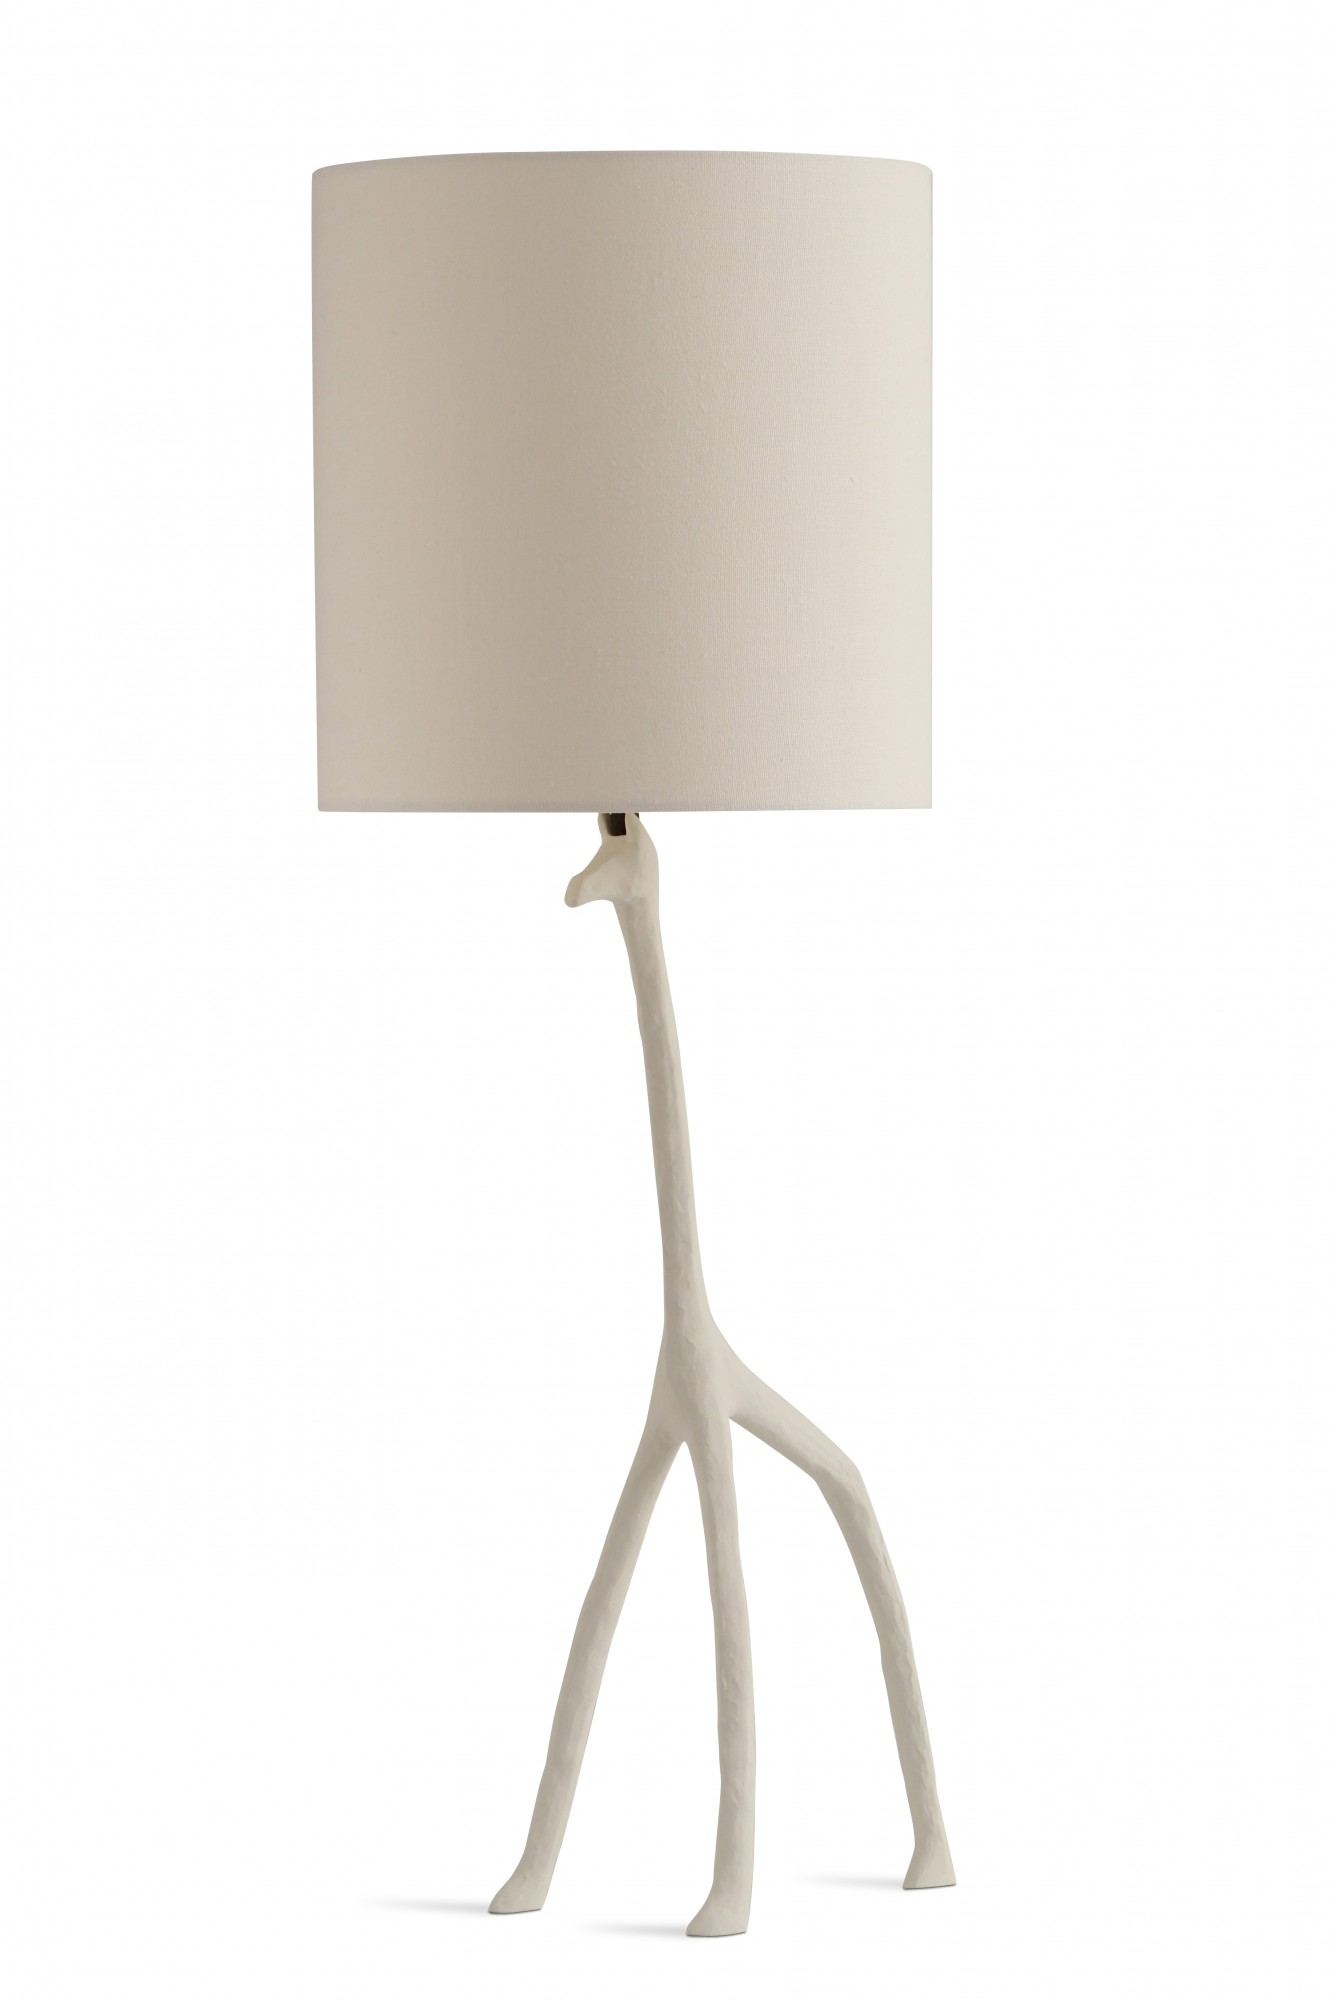 Giraffe lamp shade - To Wrap It Up Look To White Giraffe Lamps As Your Next Step To Experiencing The Joy Peace And Serenity That You So Very Need In Your Home